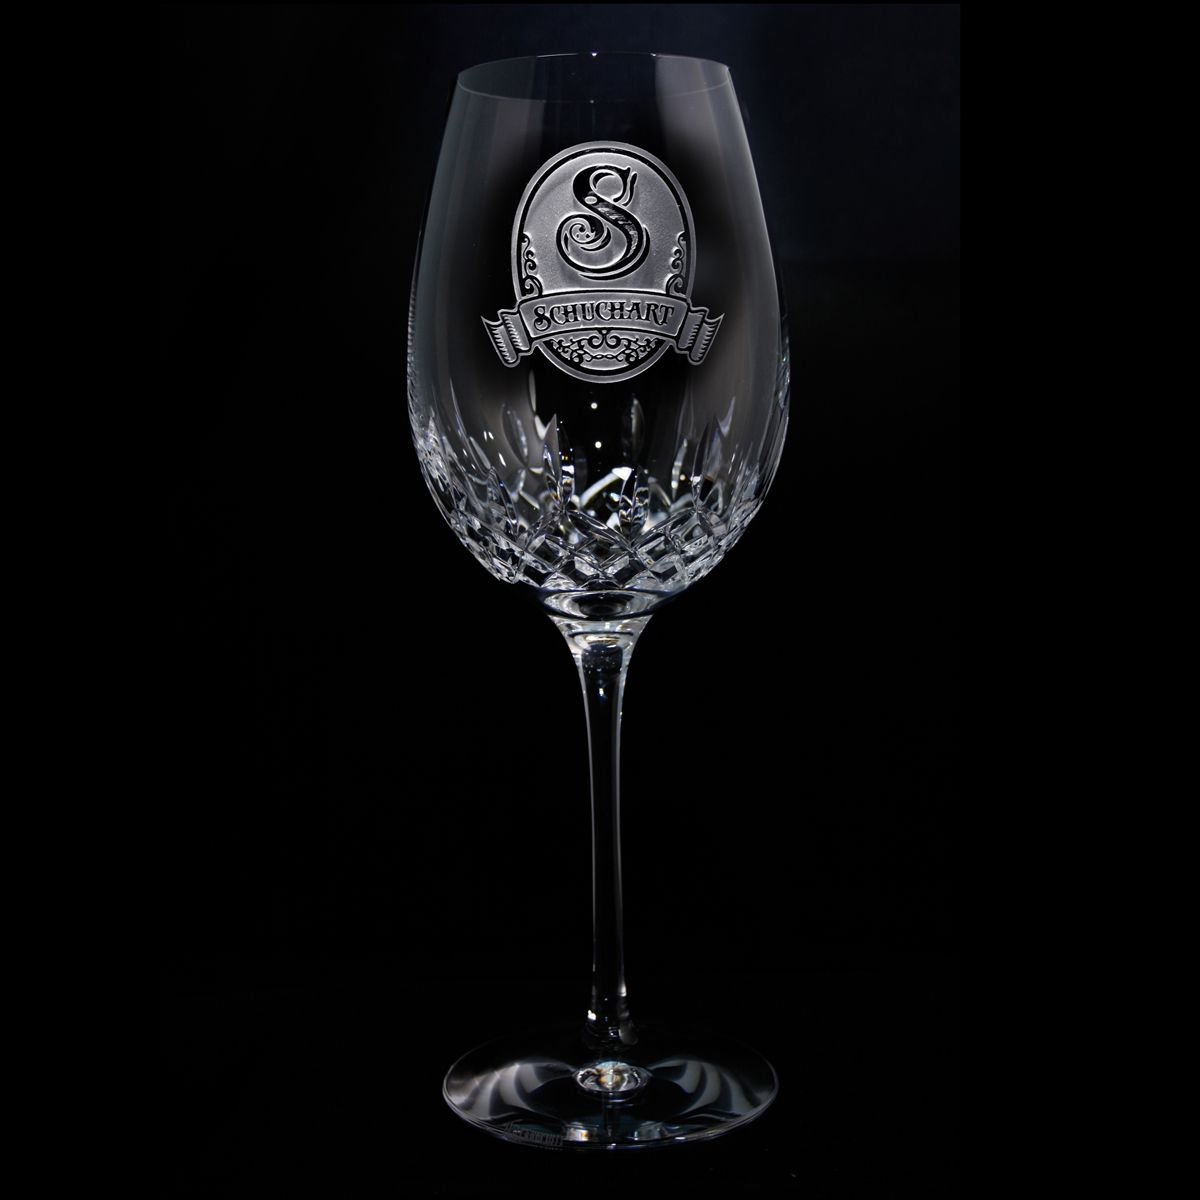 Engraved waterford crystal wine glass waterford crystal and wine - Wedgwood crystal wine glasses ...